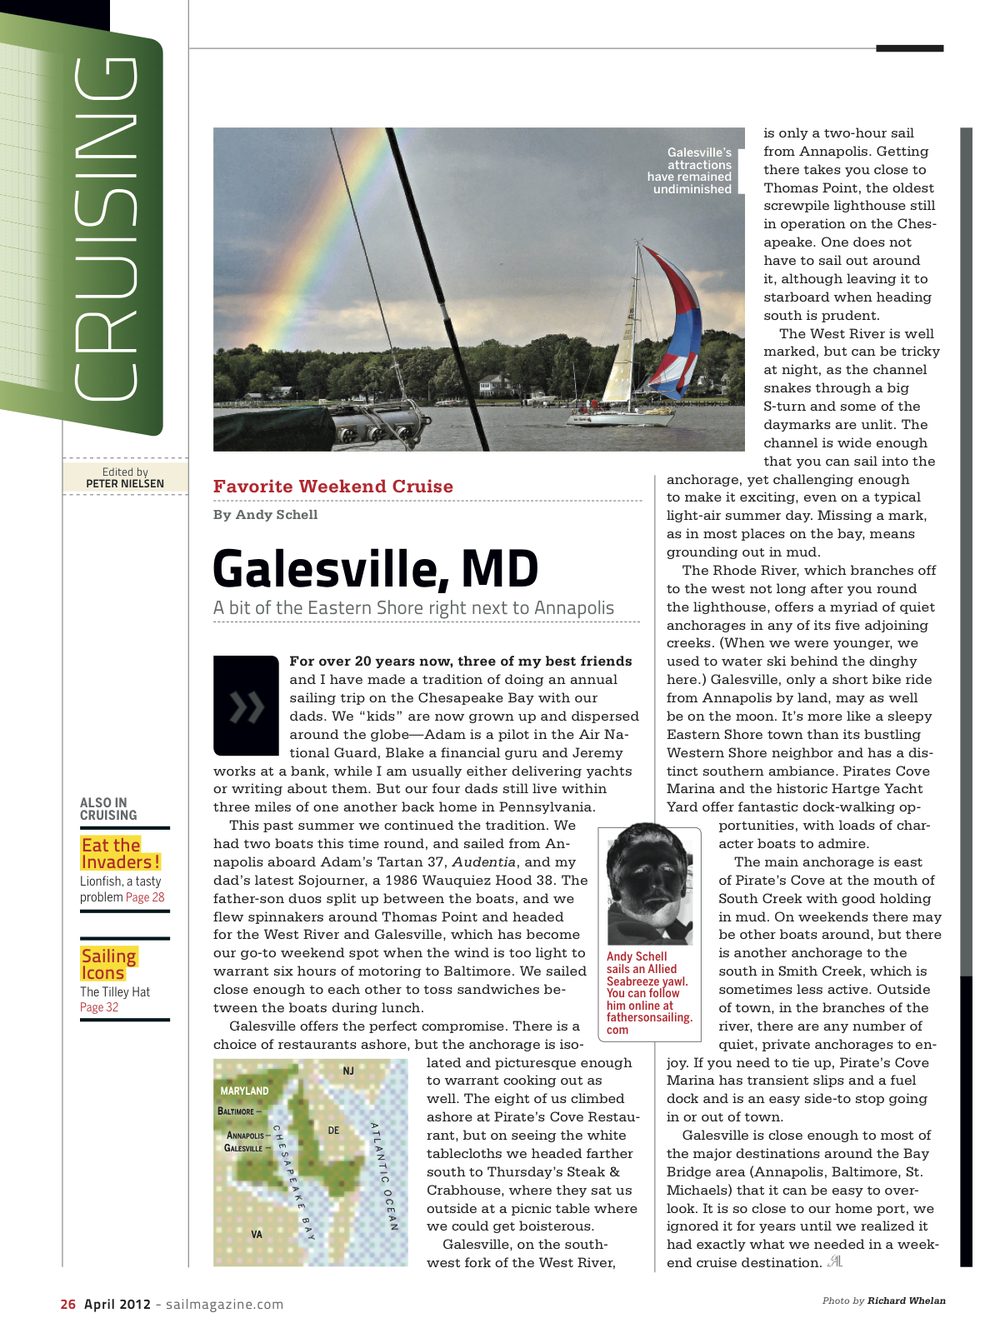 SAIL: Galesville Cruise